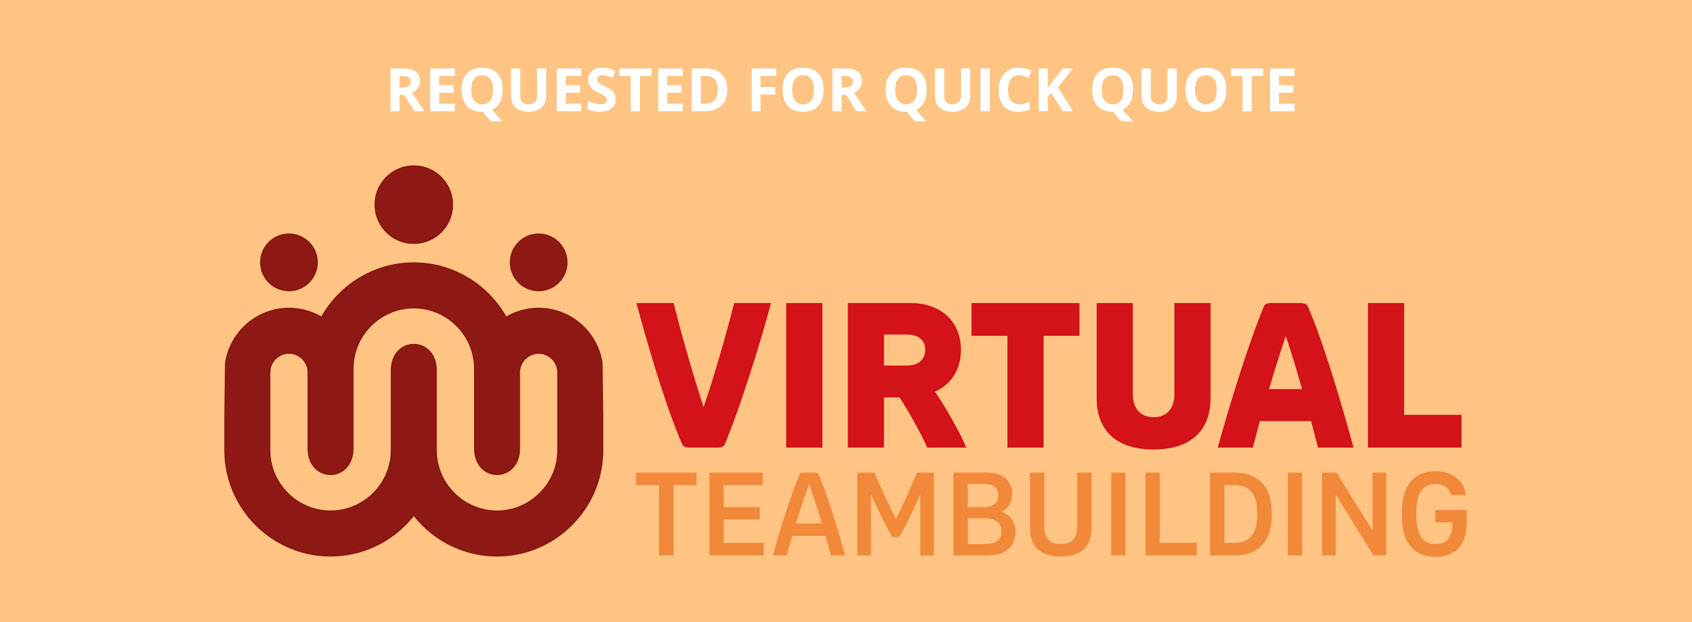 request for quotation virtual team building